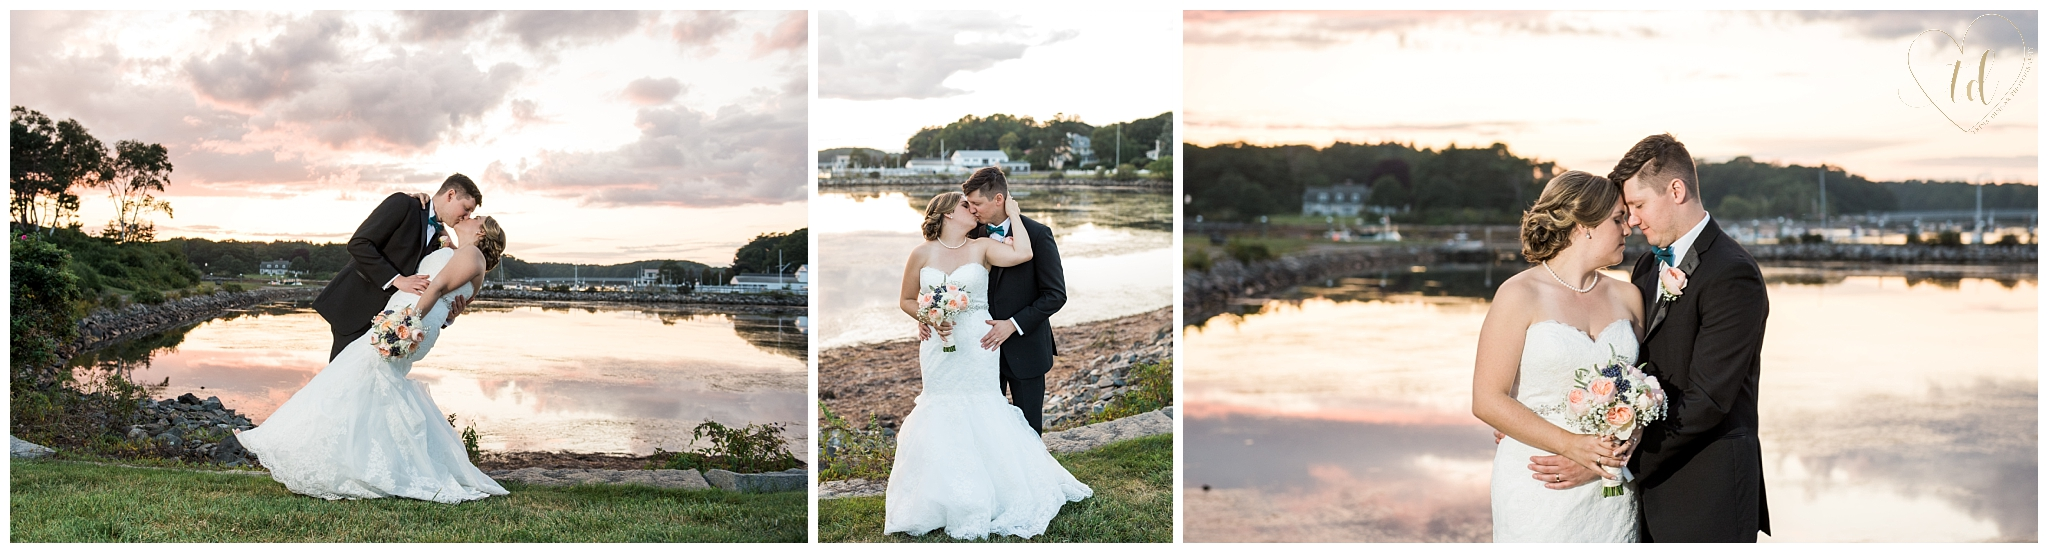 Wedding Photography in York Maine